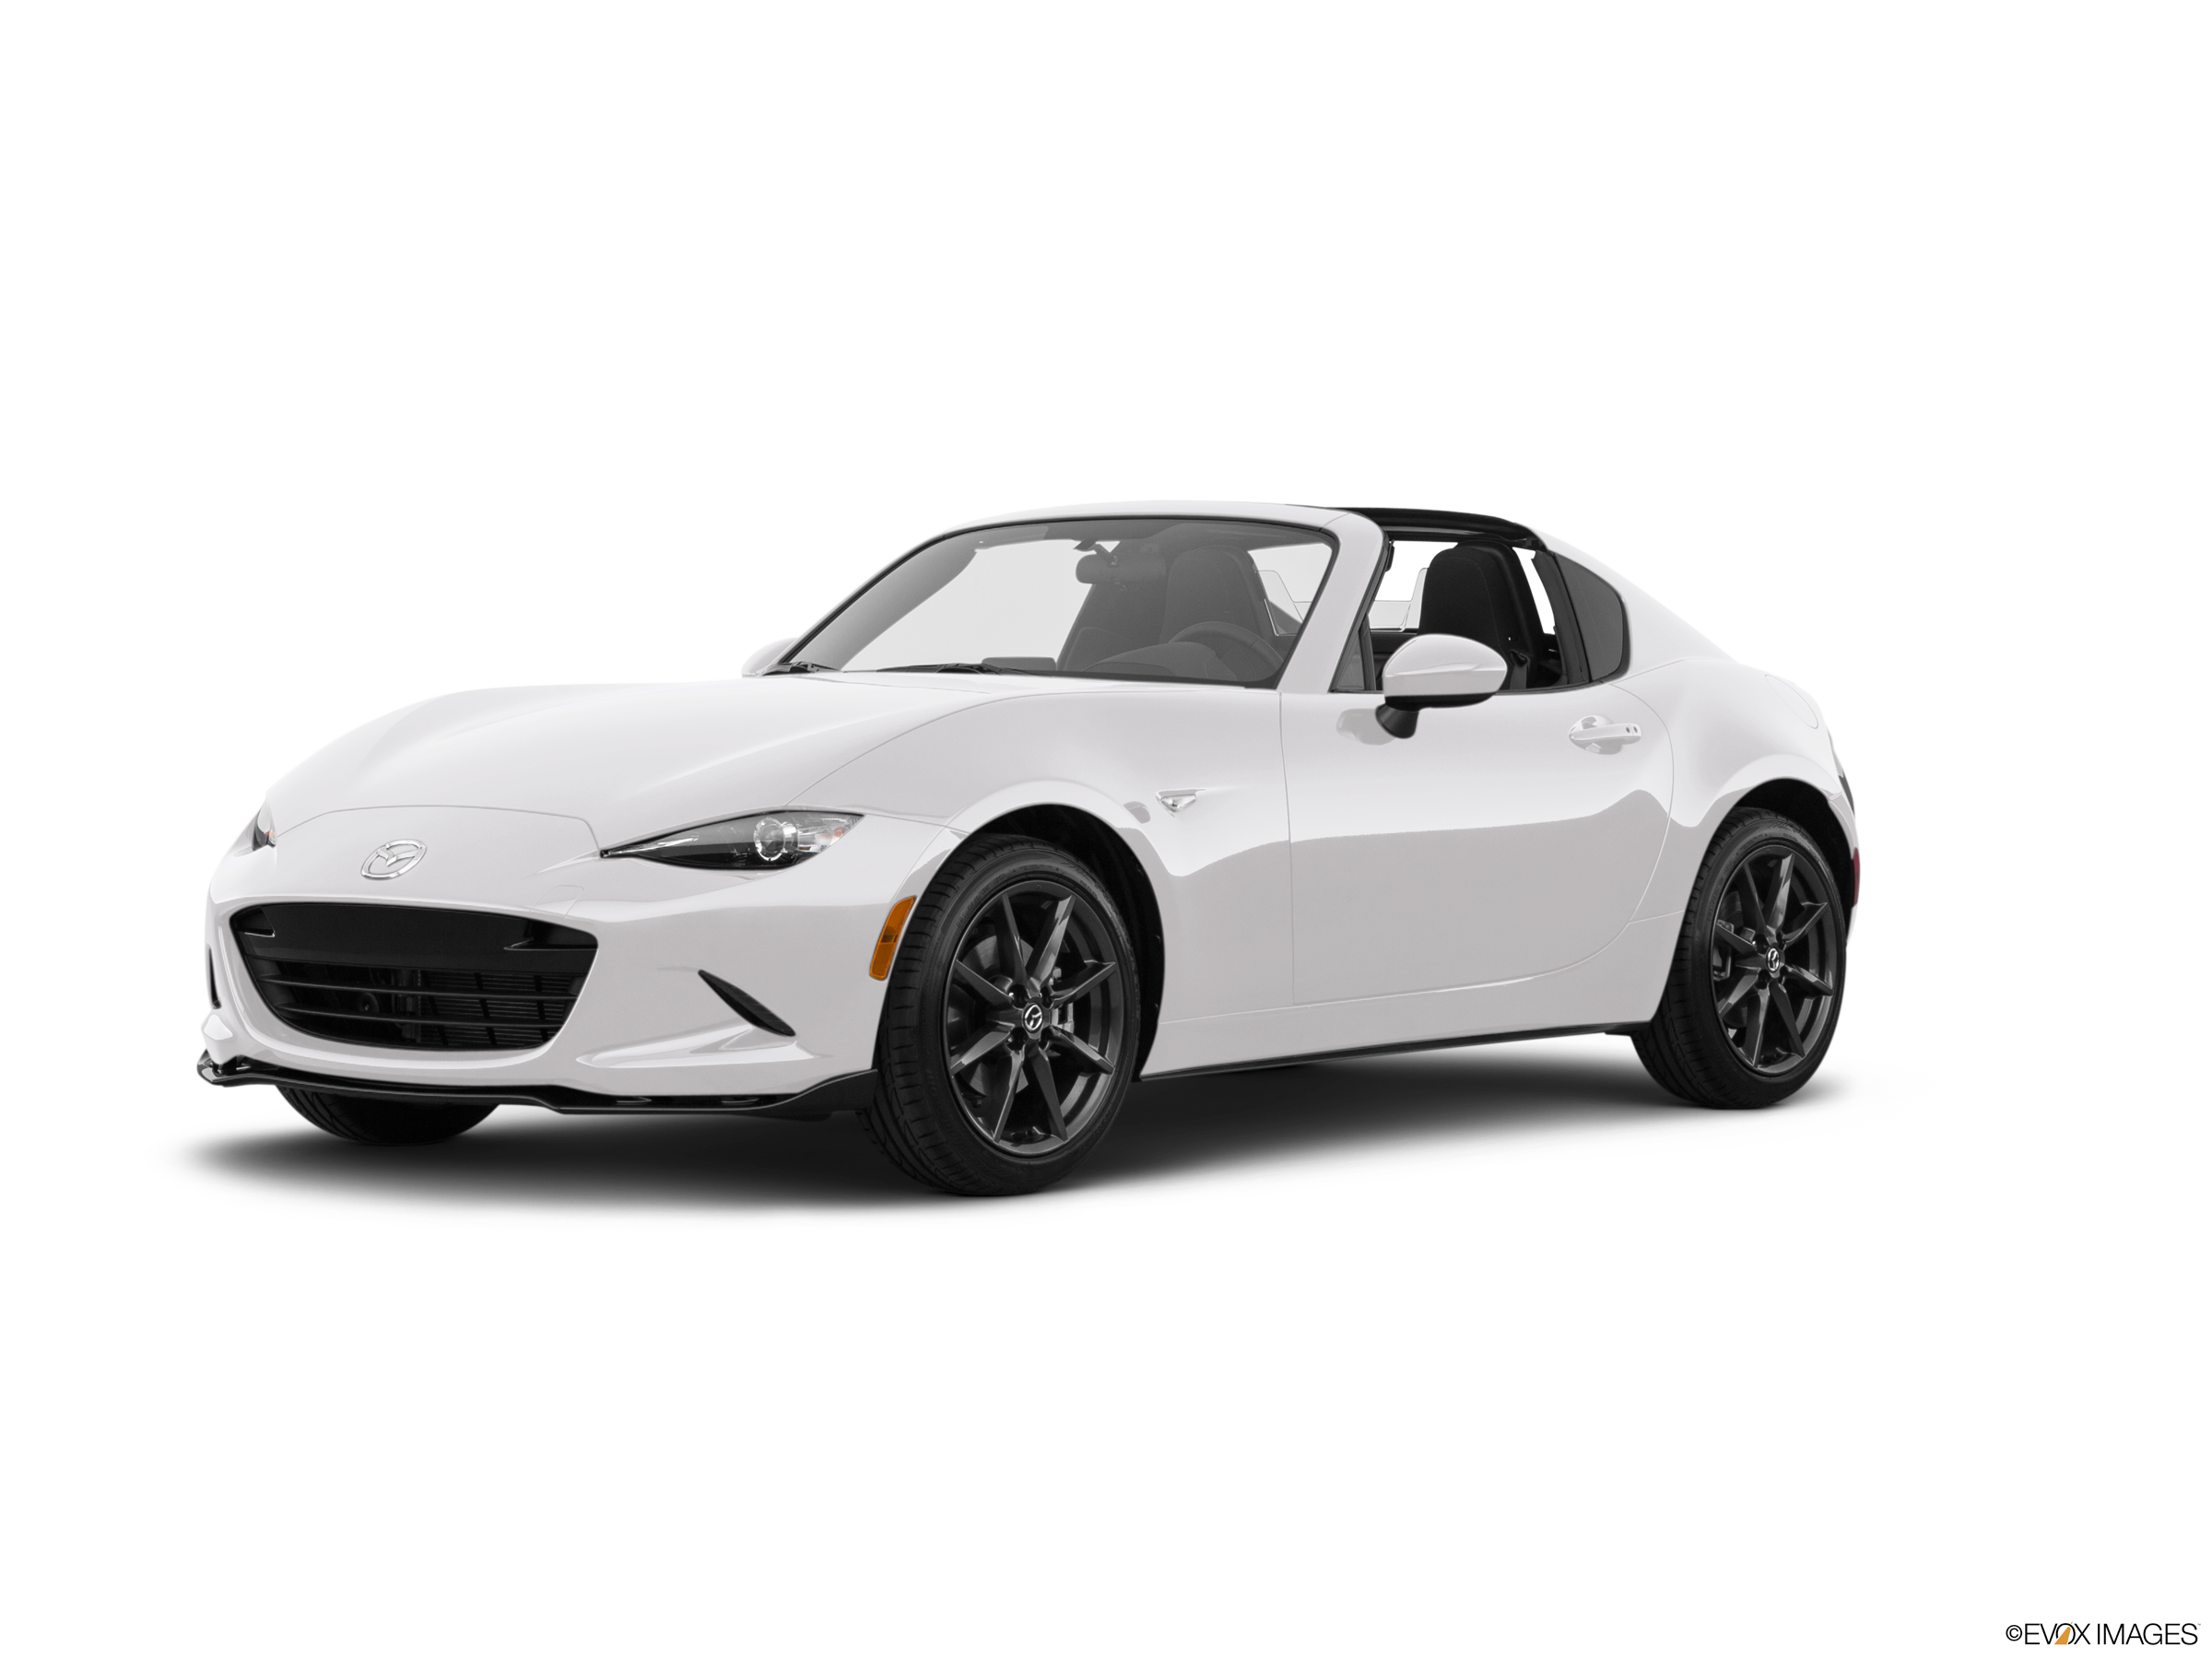 Top Expert Rated Coupes of 2017 - 2017 Mazda MX-5 Miata RF